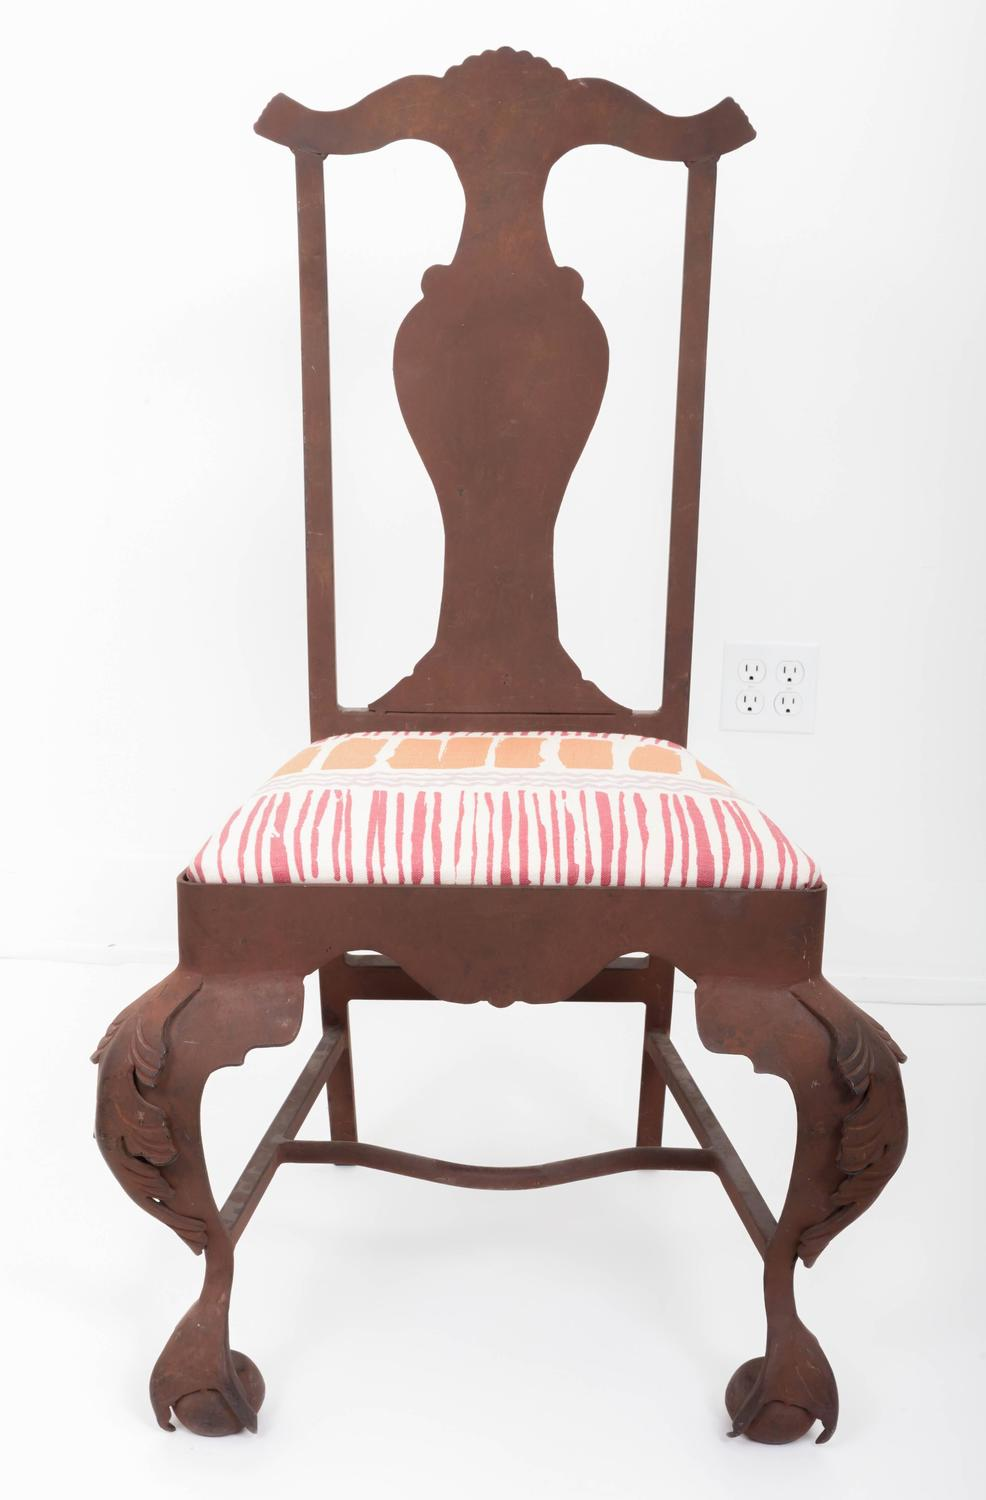 Iron Queen Anne Chair For Sale at 1stdibs